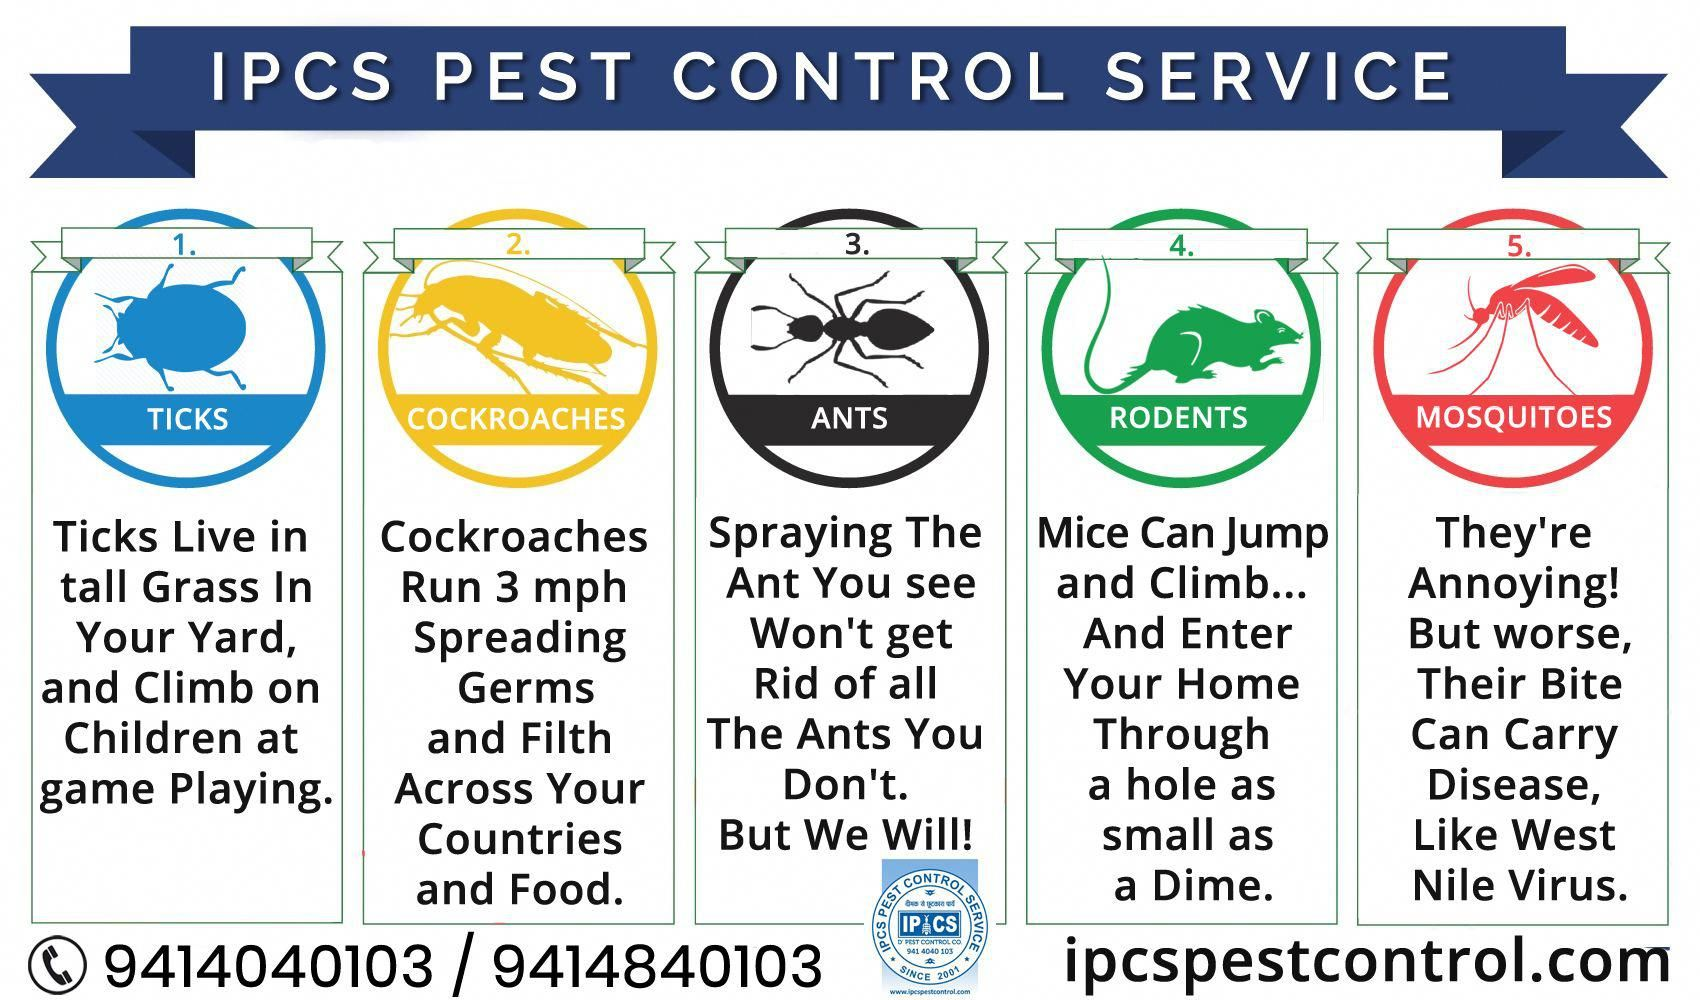 Looking for bird control services in Jaipur? IPCS Pest